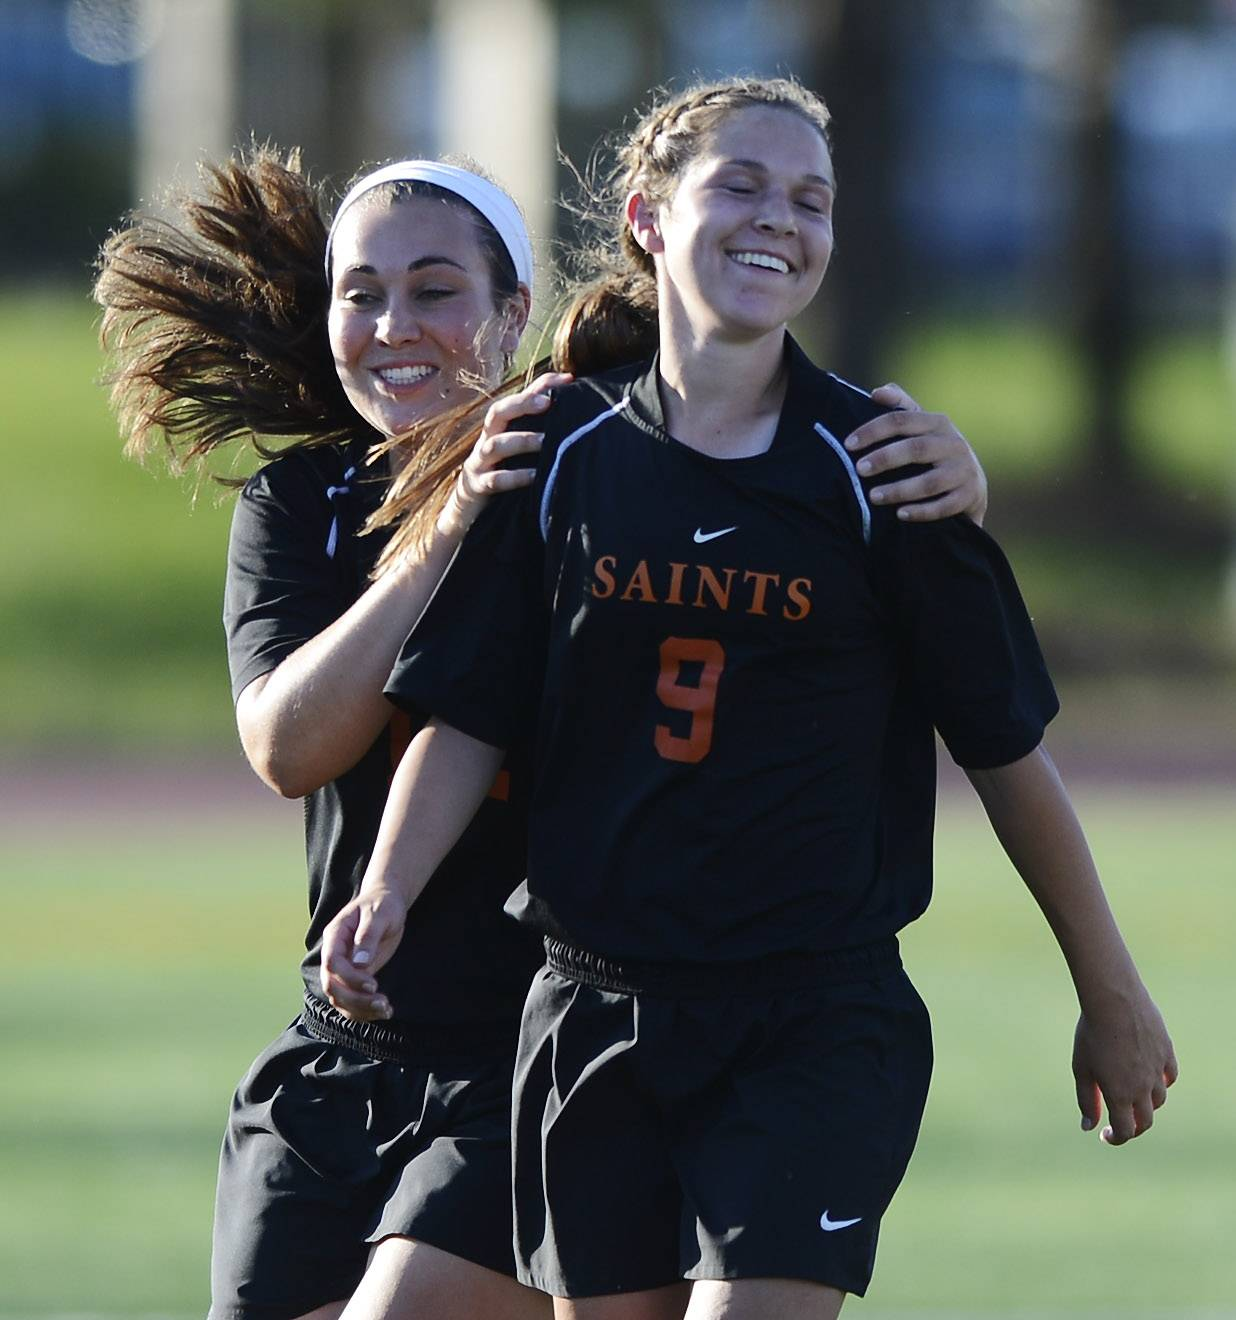 Shannon Gatehouse, left, and Darcy Cunningham of St. Charles North celebrate their win over Lincoln Way North during the girls soccer Class 3A state semifinal at North Central College in Naperville Friday.